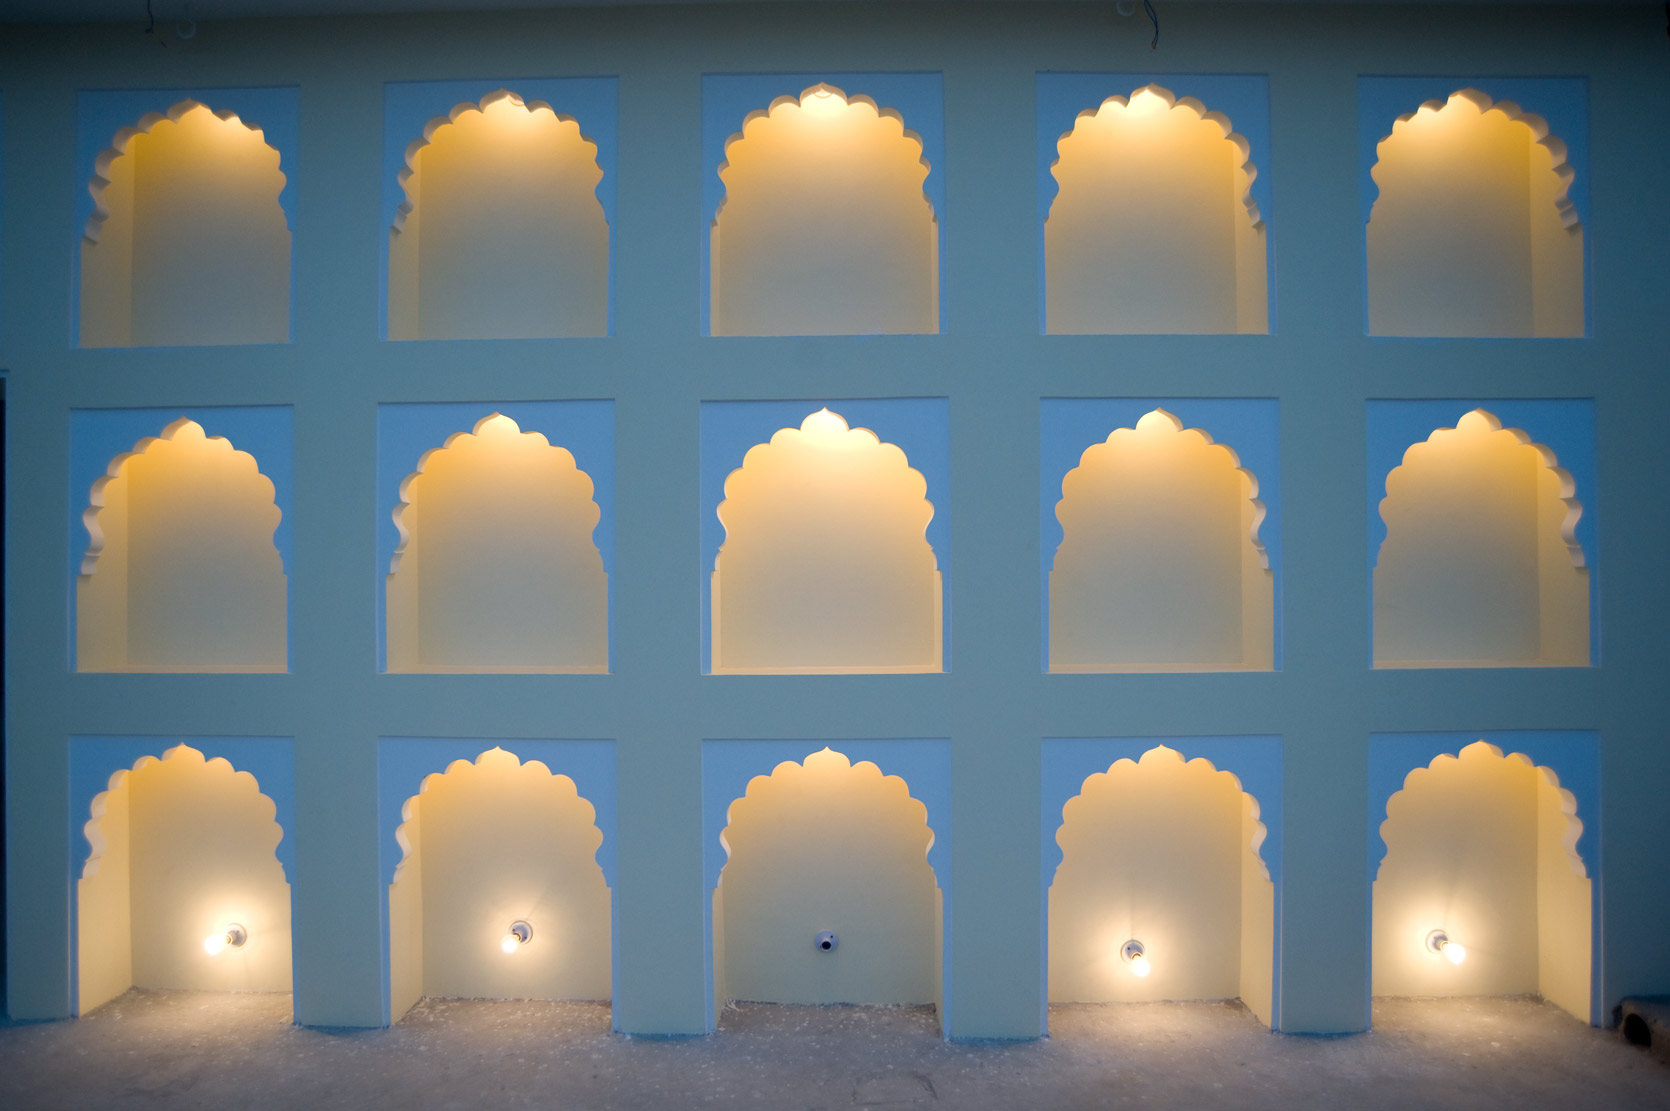 Lit arches in the evening, Jaipur